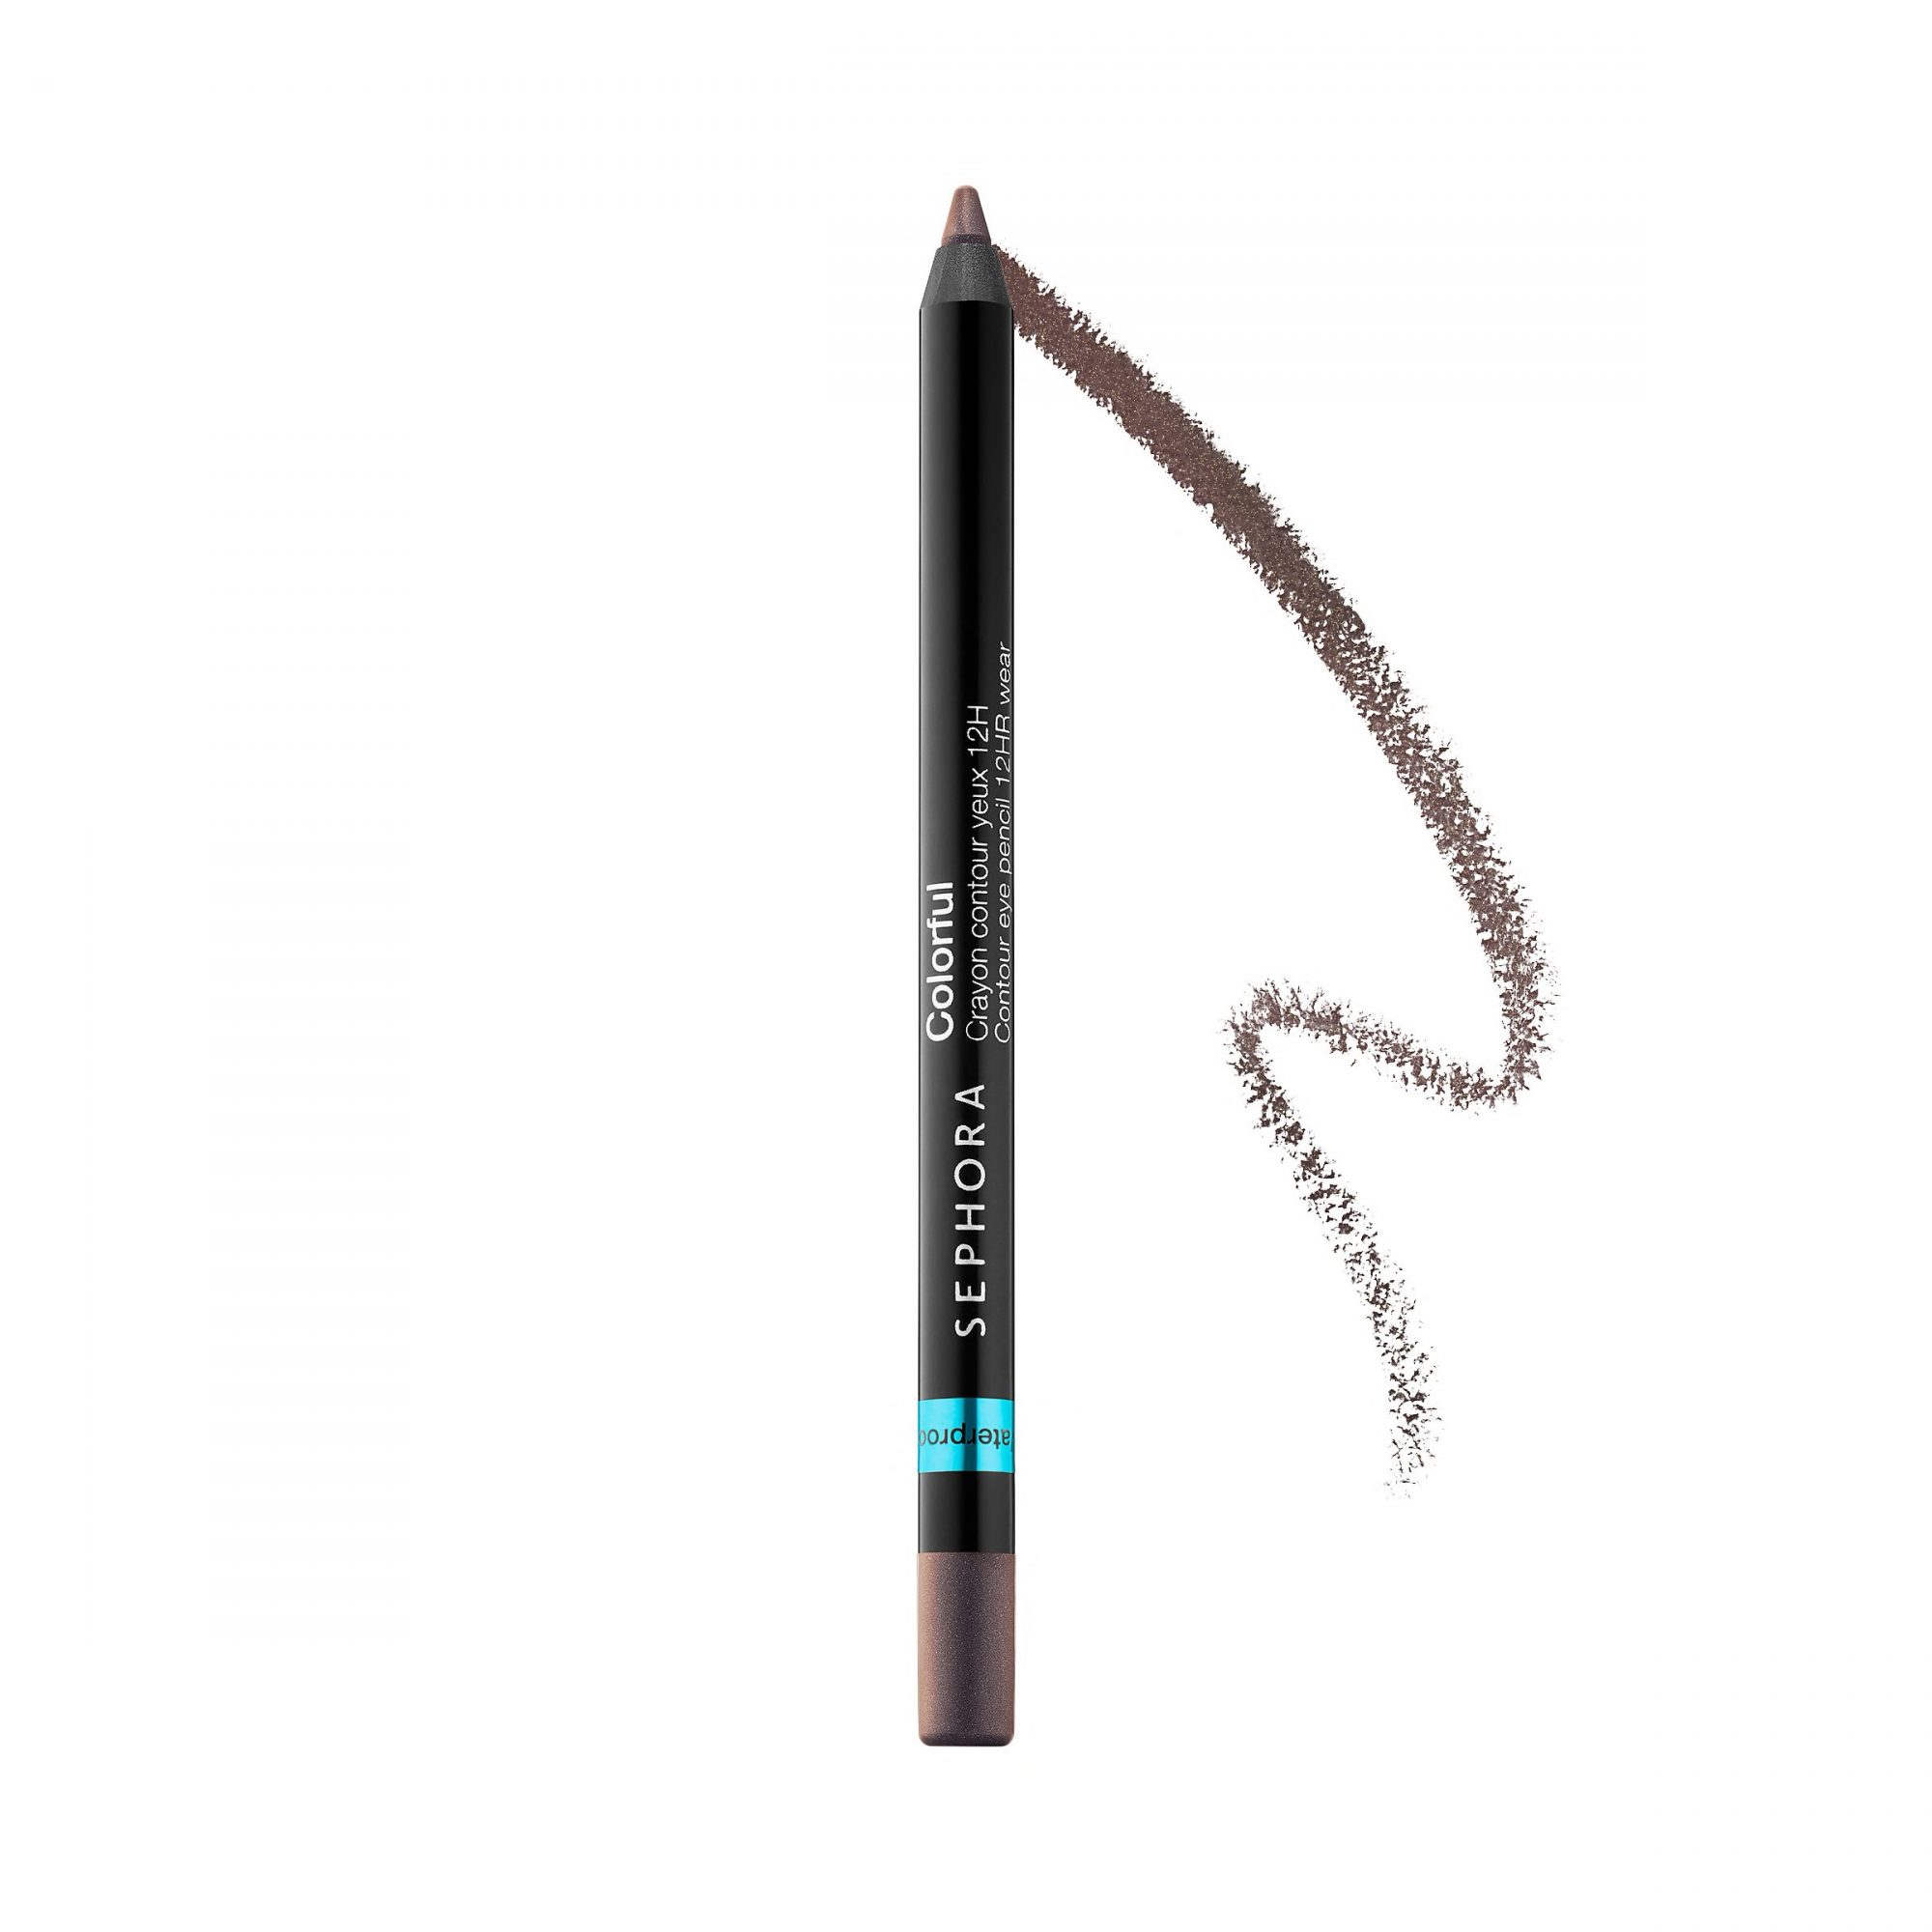 CoverGirl Perfect Blend Eyeliner in Smoky Taupe